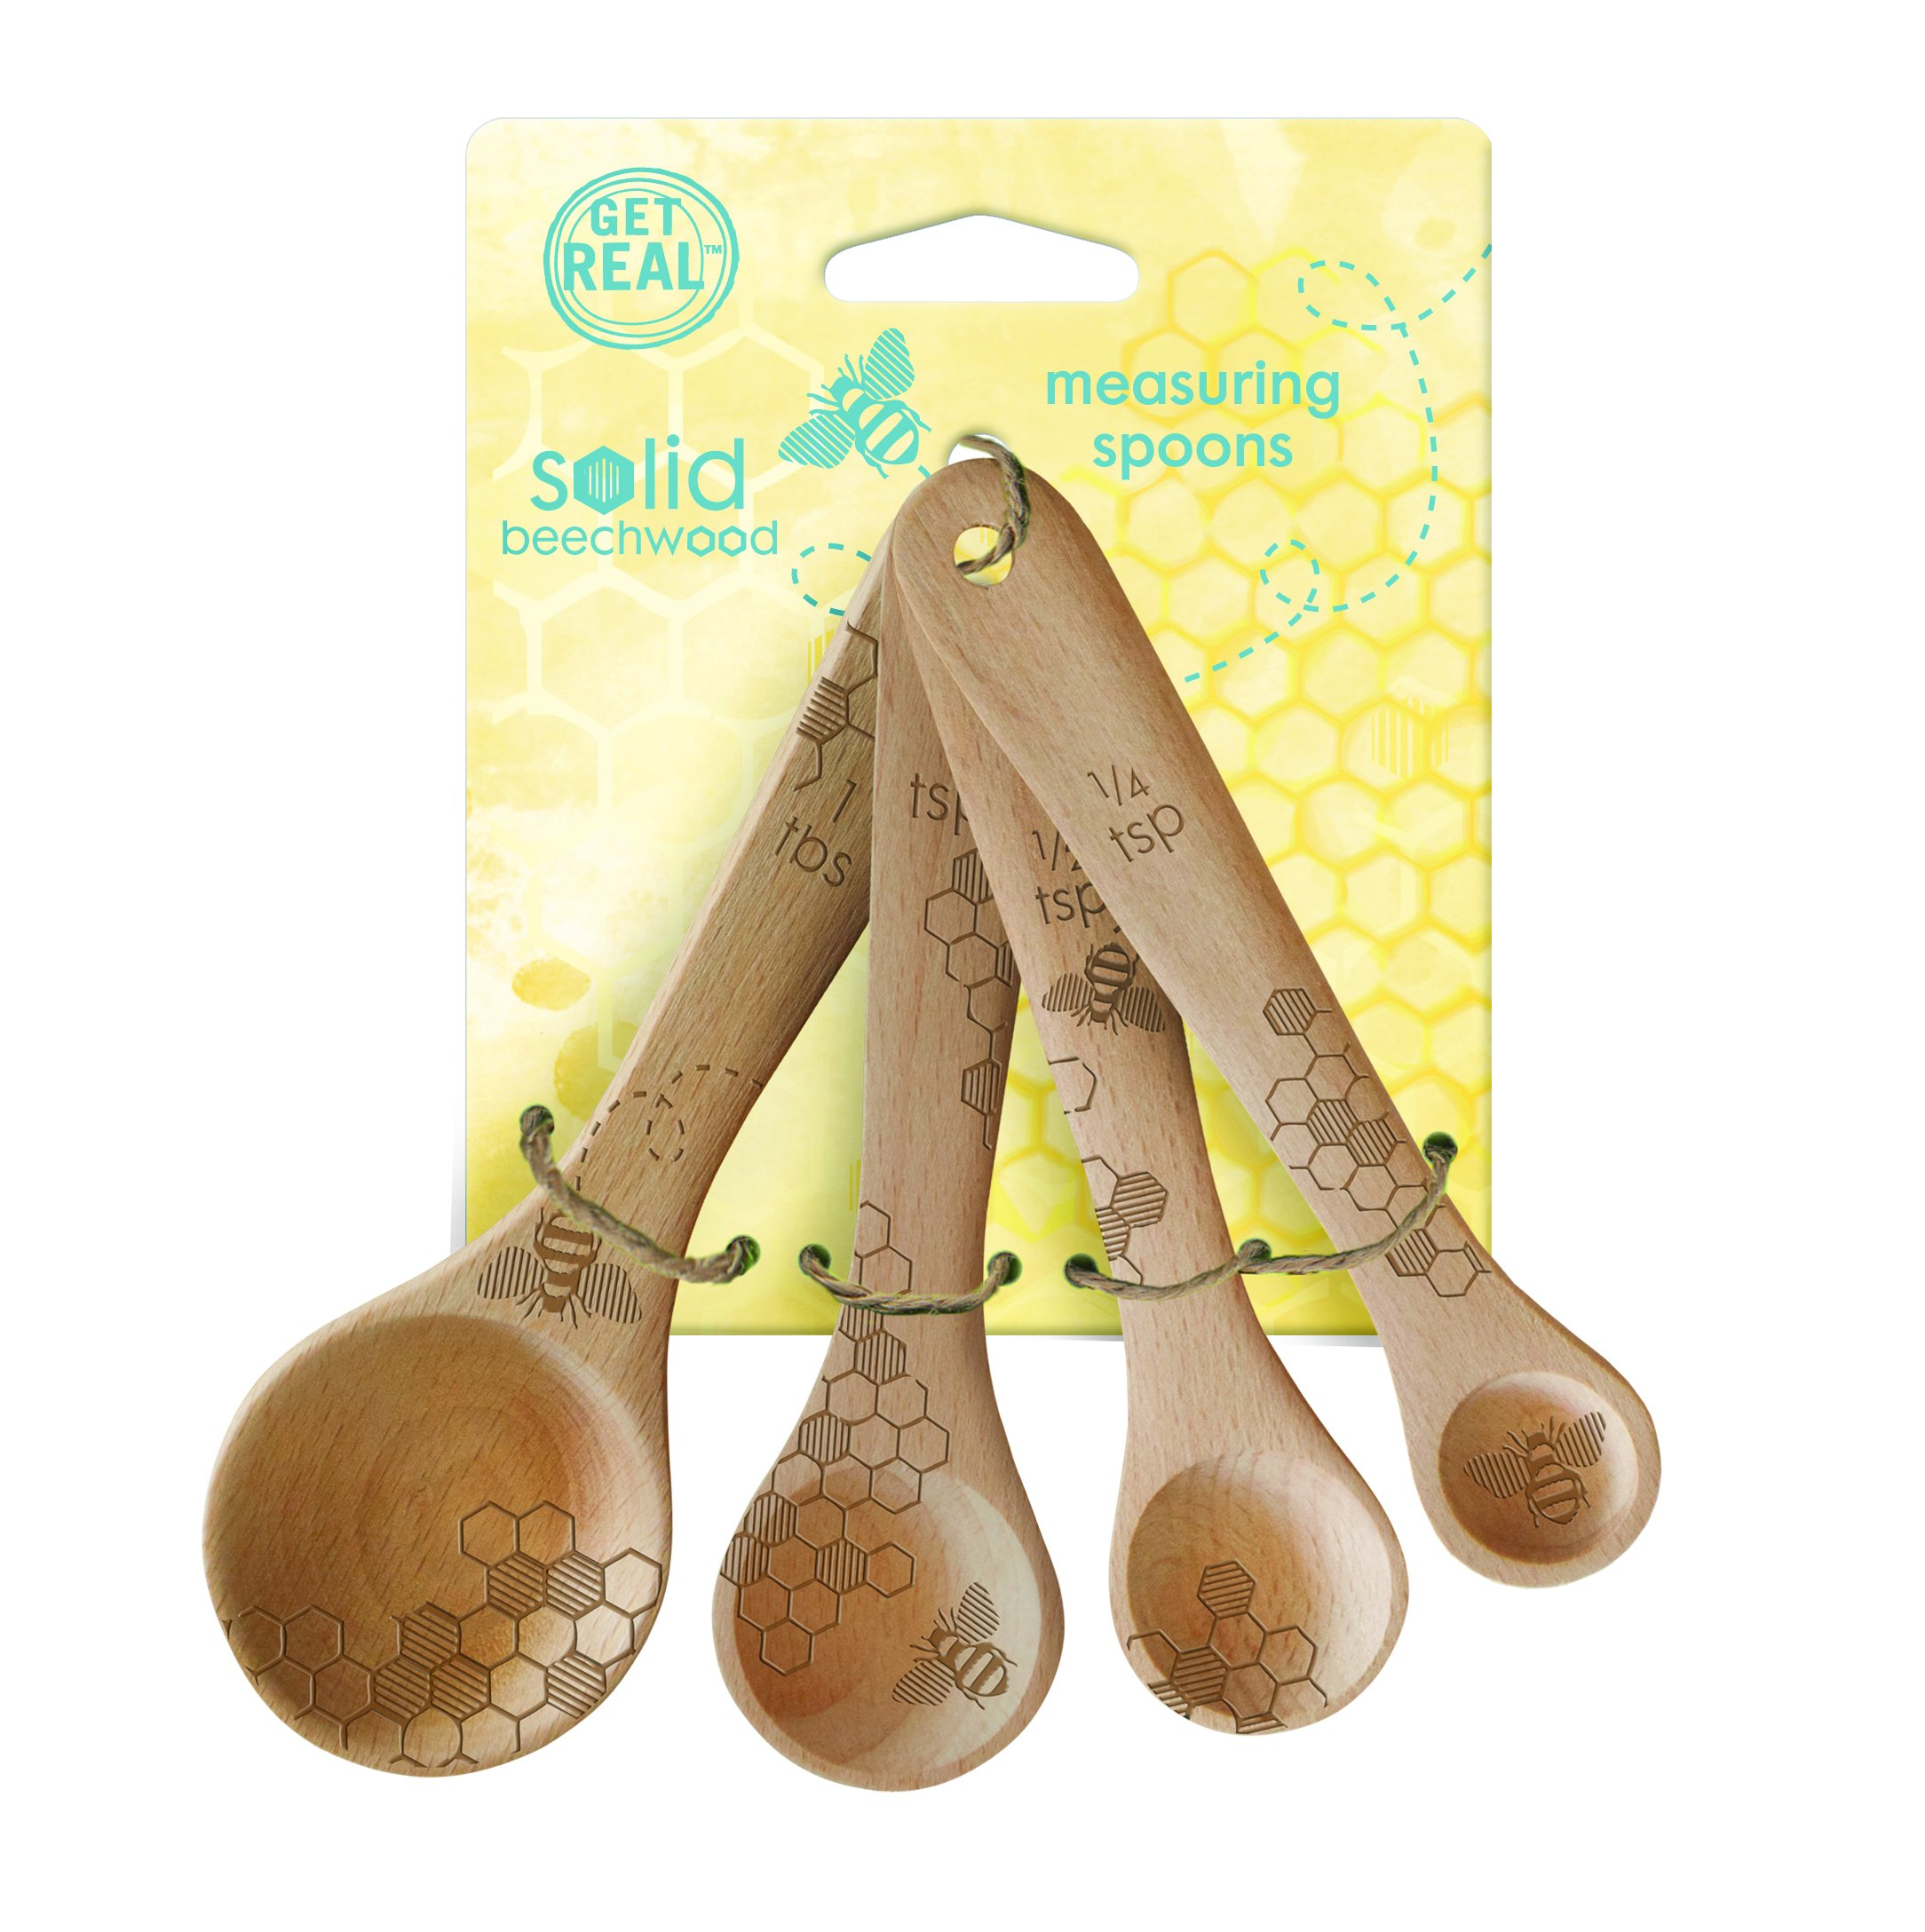 Talisman Designs Beechwood Measuring Spoons, Laser Etched with Honey Bee Art, 1-TBS, 1-tsp, 1/2-tsp, 1/4-tsp